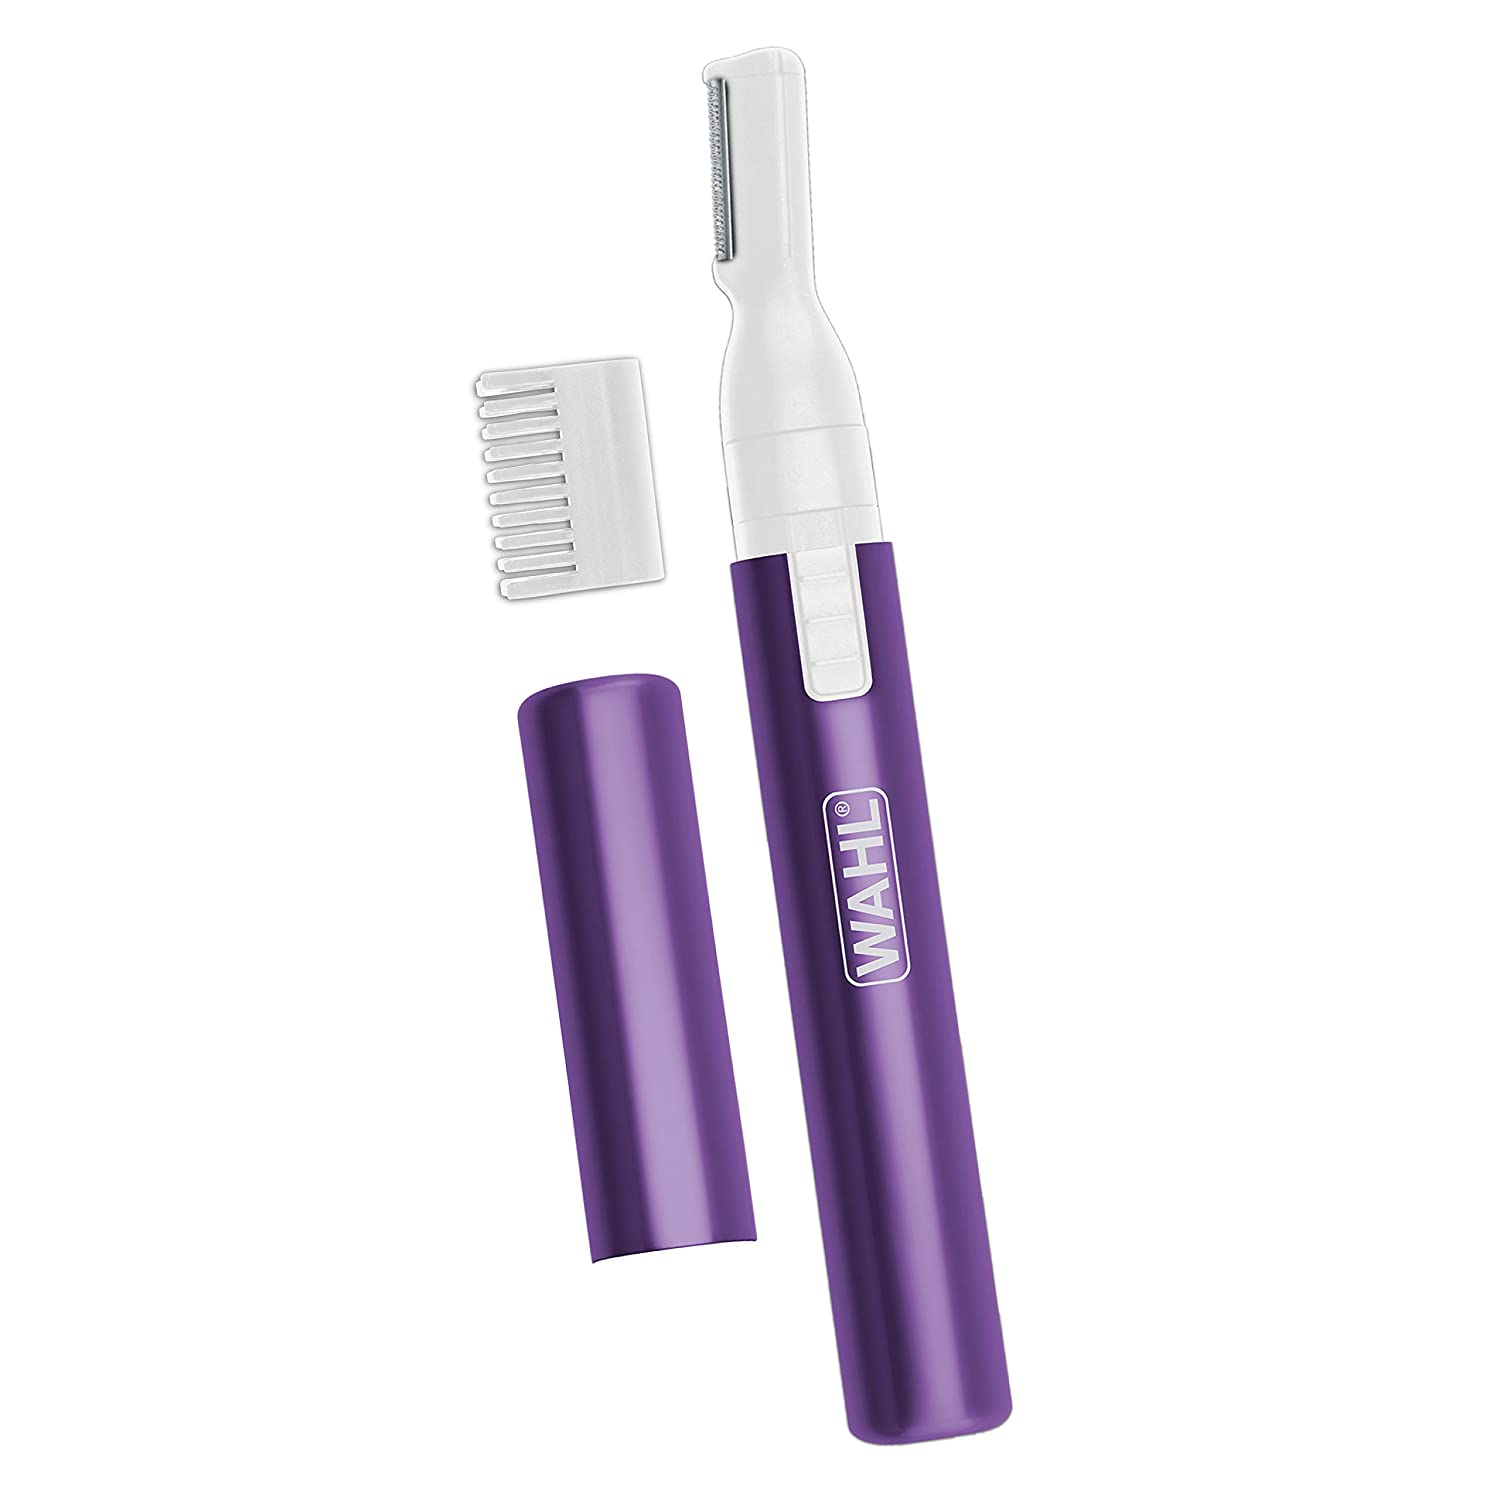 Nose Hair Trimmer for Men Women Clean and Confident Precision Detailer Purple